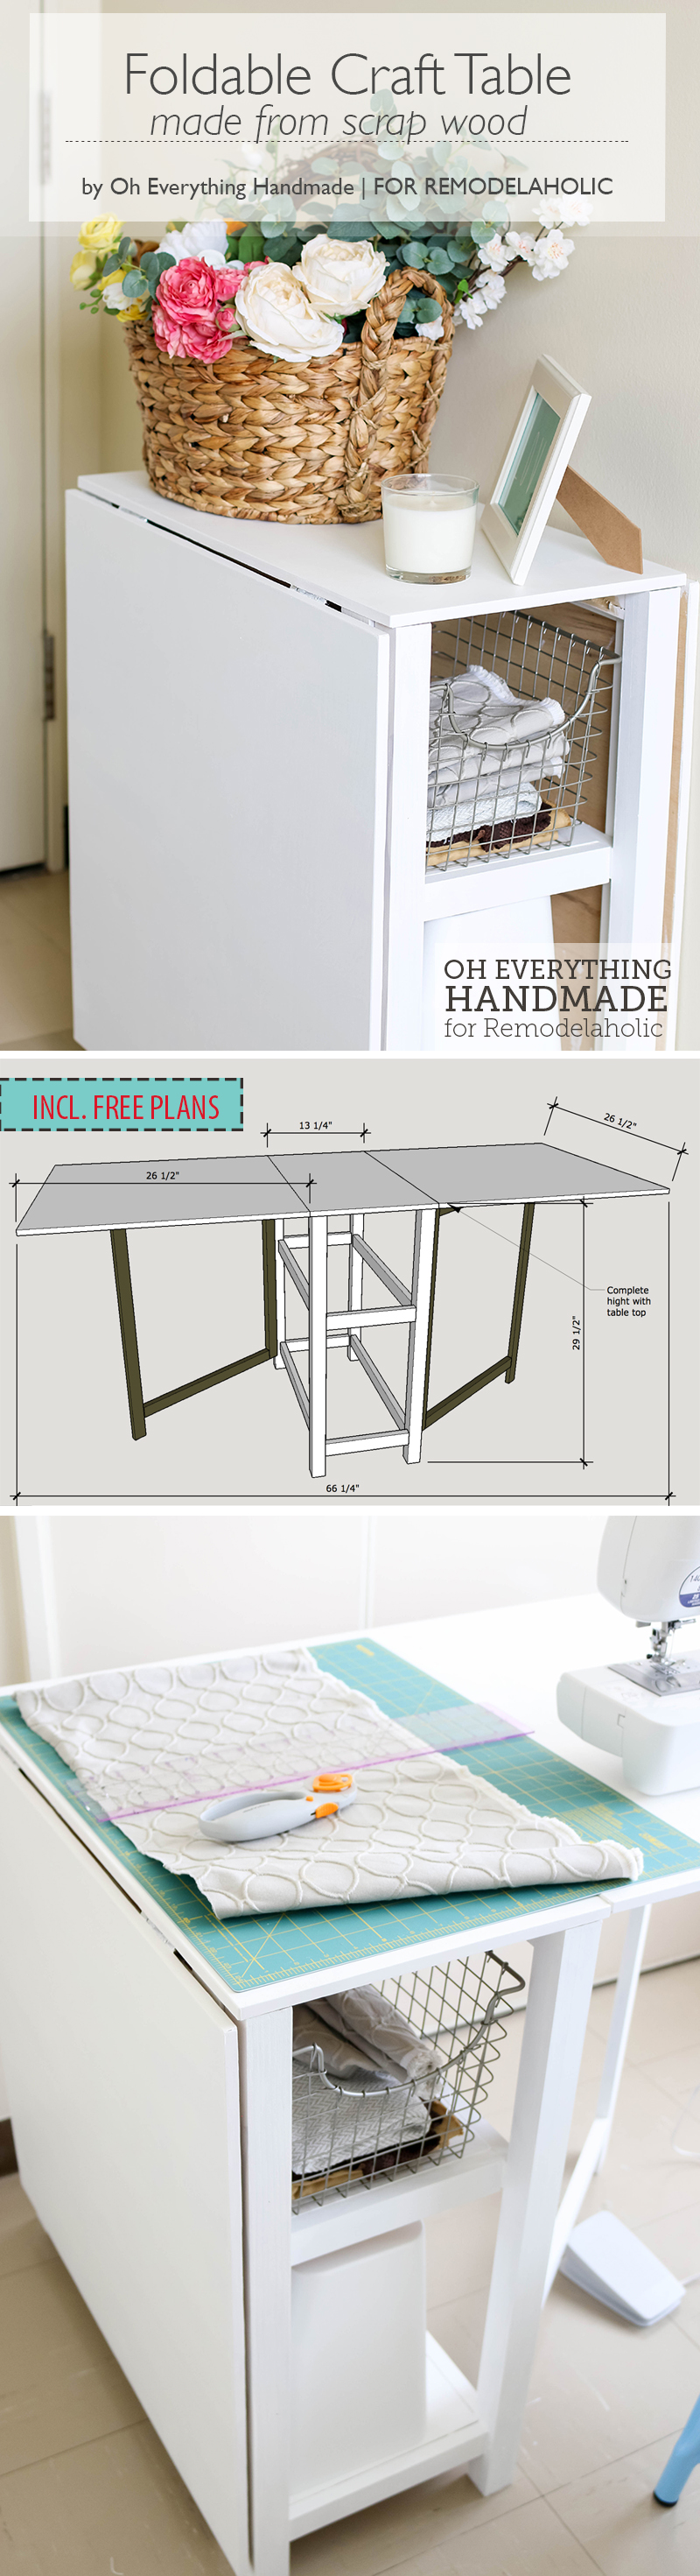 Make Your Small Craft Area Work With This E Conscious Diy Foldable Table